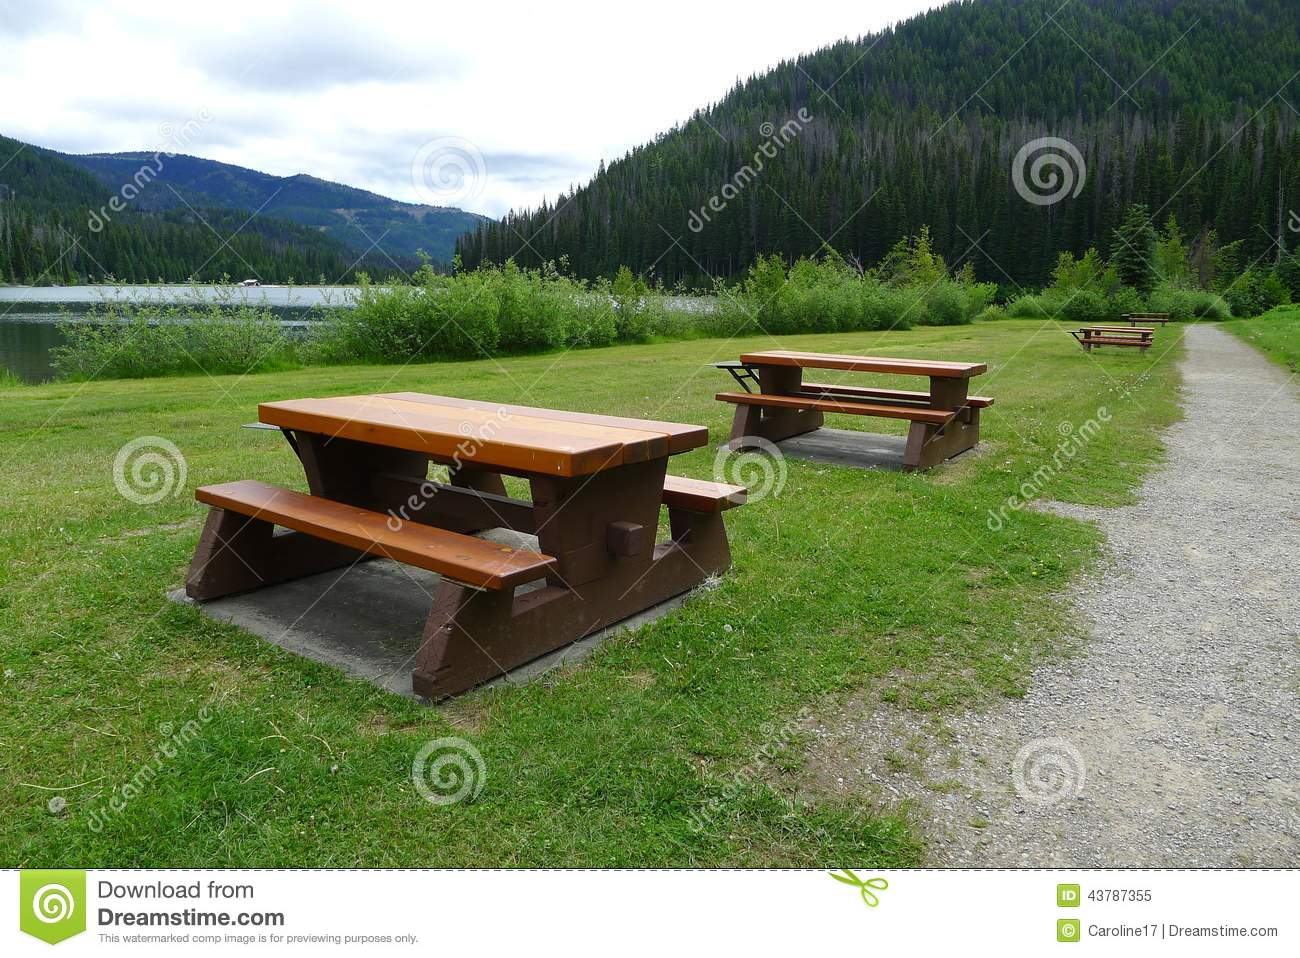 park picnic of bc provincial benches c picture e green image and was canada taken wooden rest tables stock manning photo table